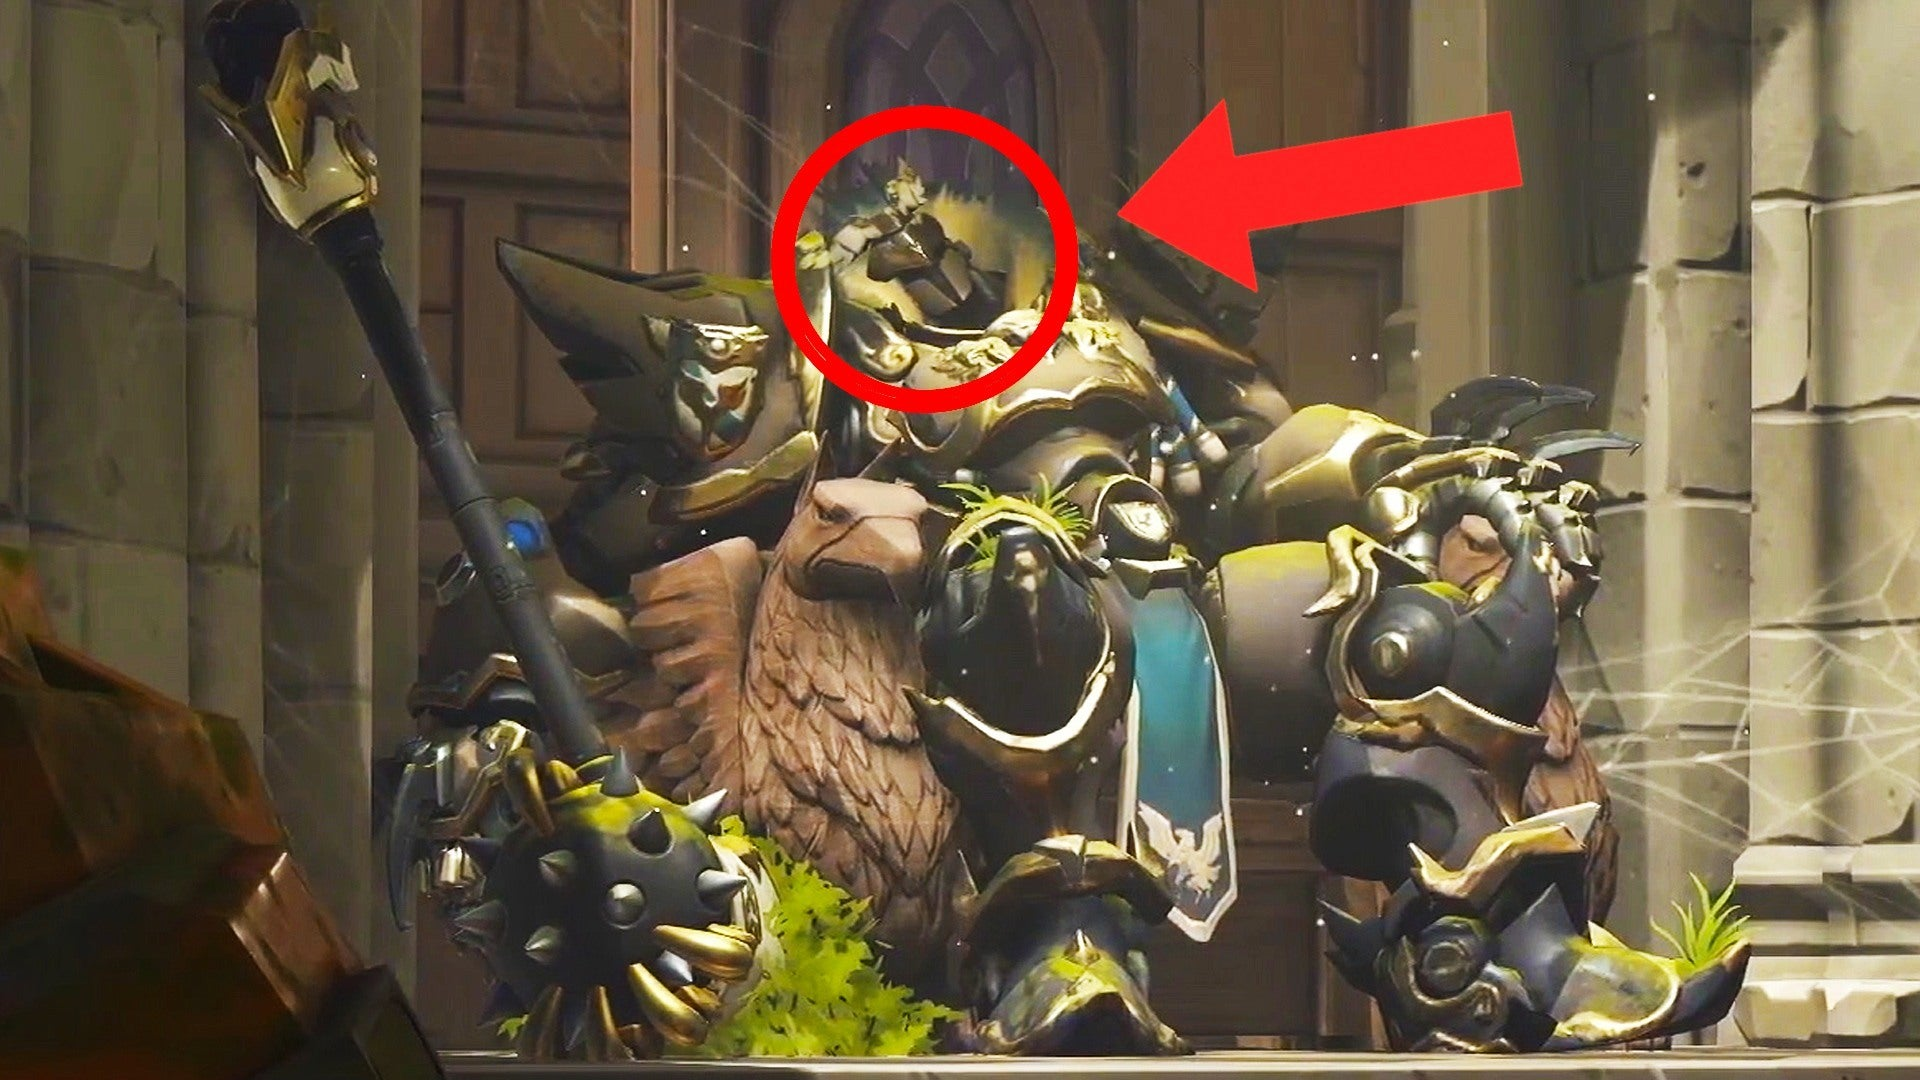 Ps3 Animated Wallpaper Overwatch 17 Things You Missed In The Eichenwalde Trailer